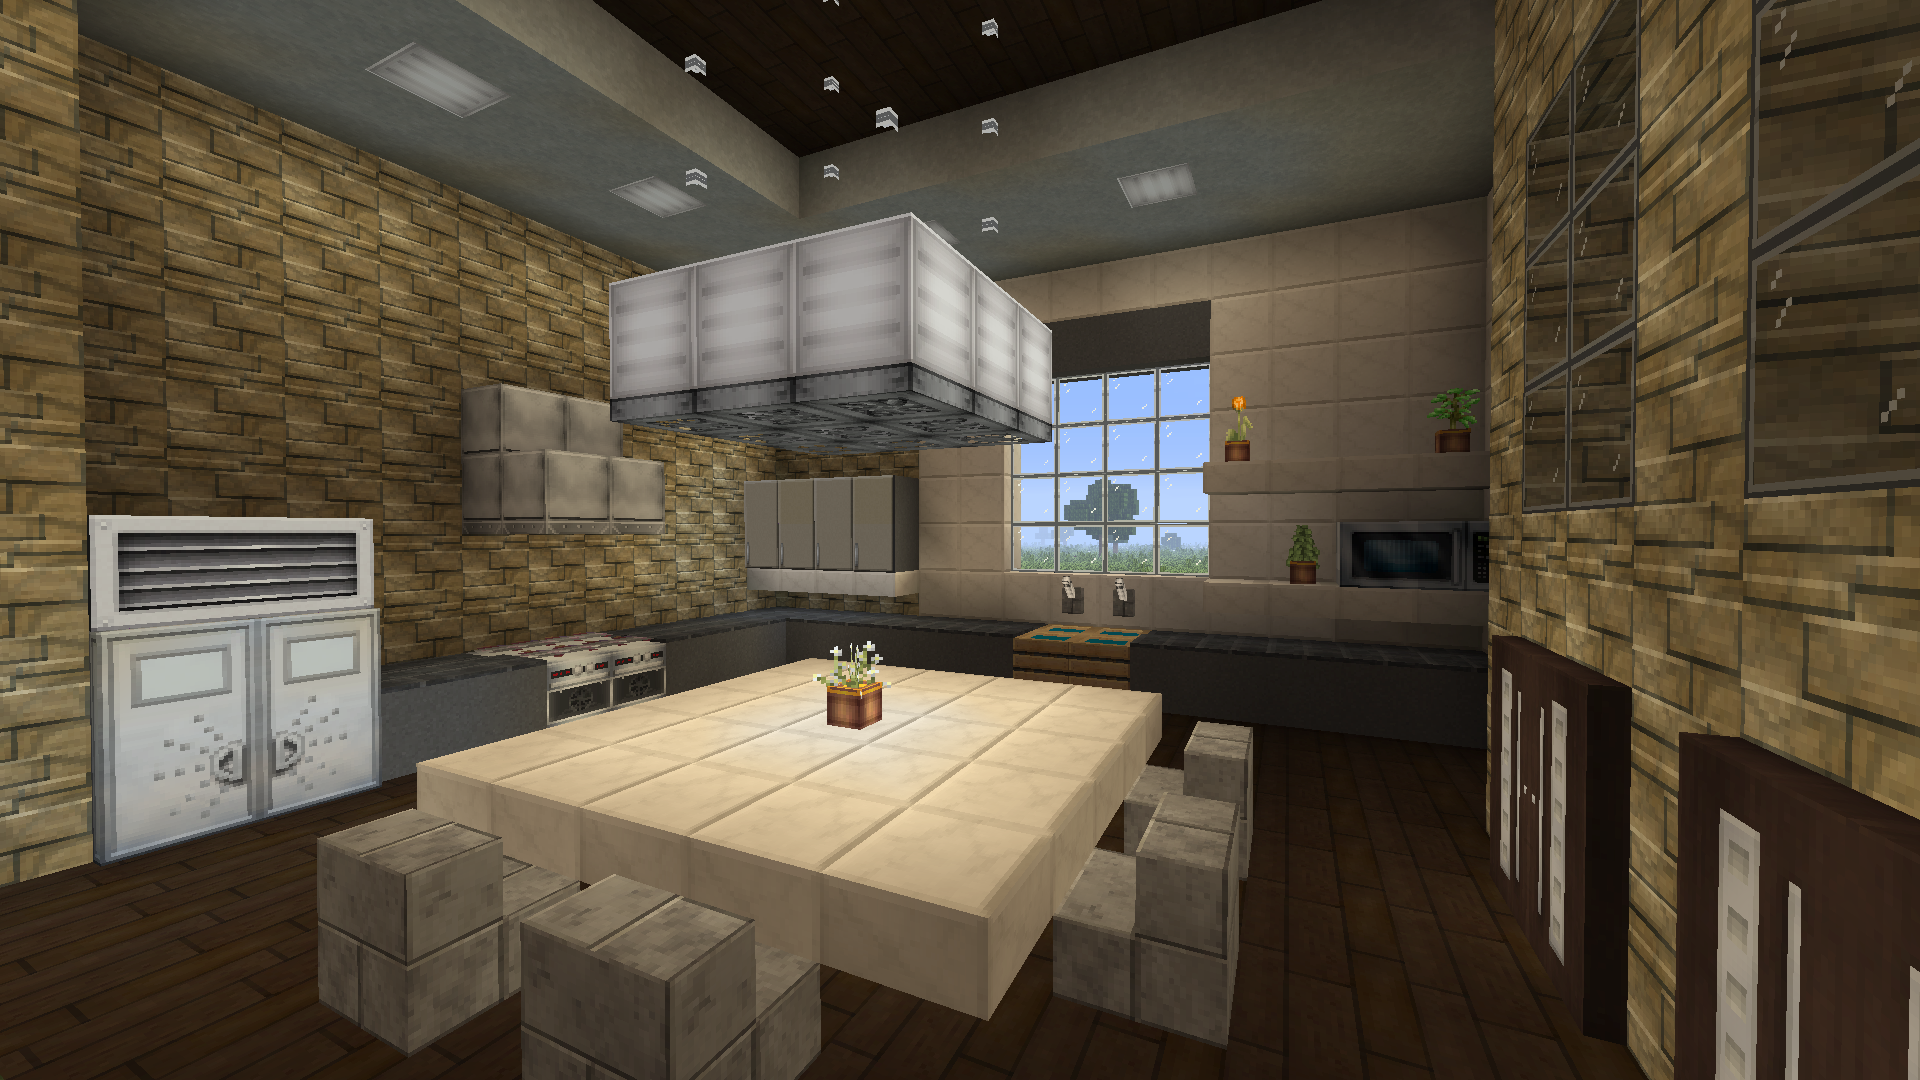 My Ultra Lux Modern Kitchen Minecraft Modern Kitchen Interior Design Kitchen Kitchen Cabinet Design